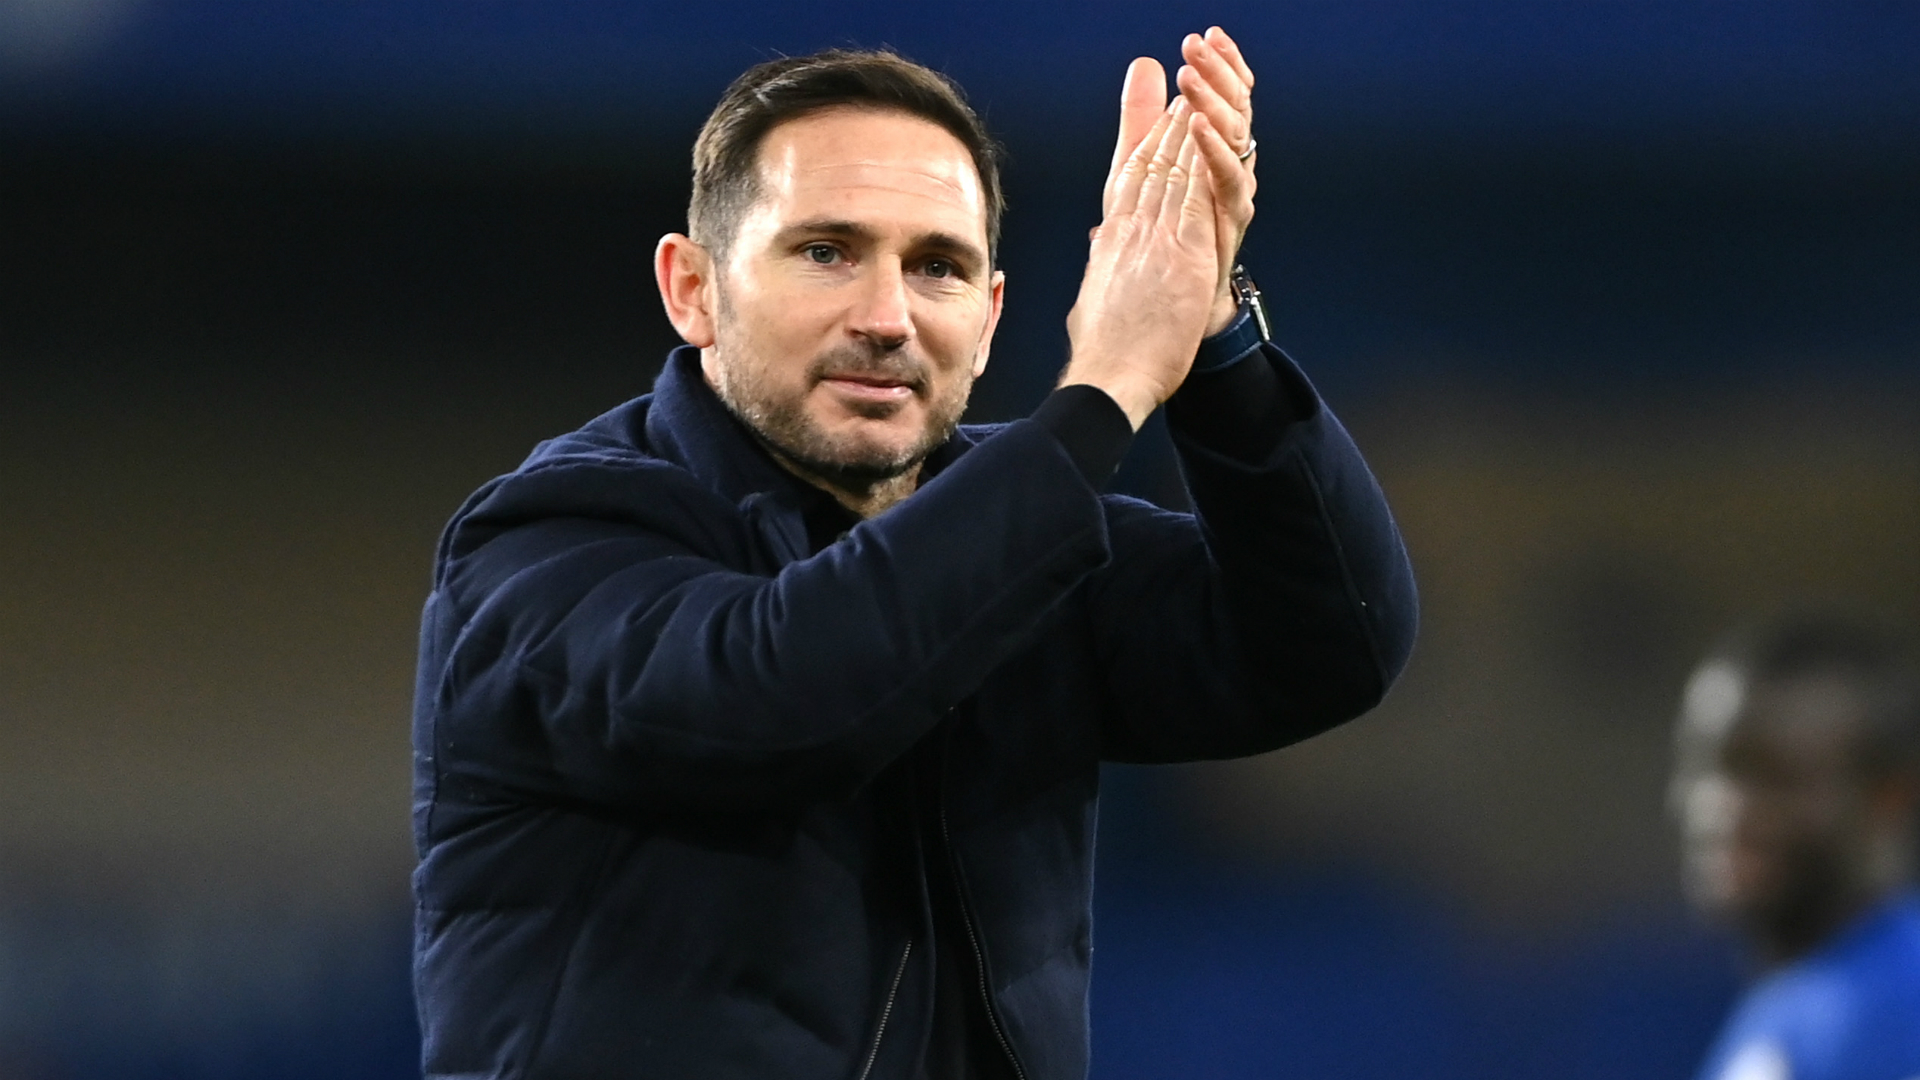 Lampard: Chelsea fans can dream of winning Premier League title